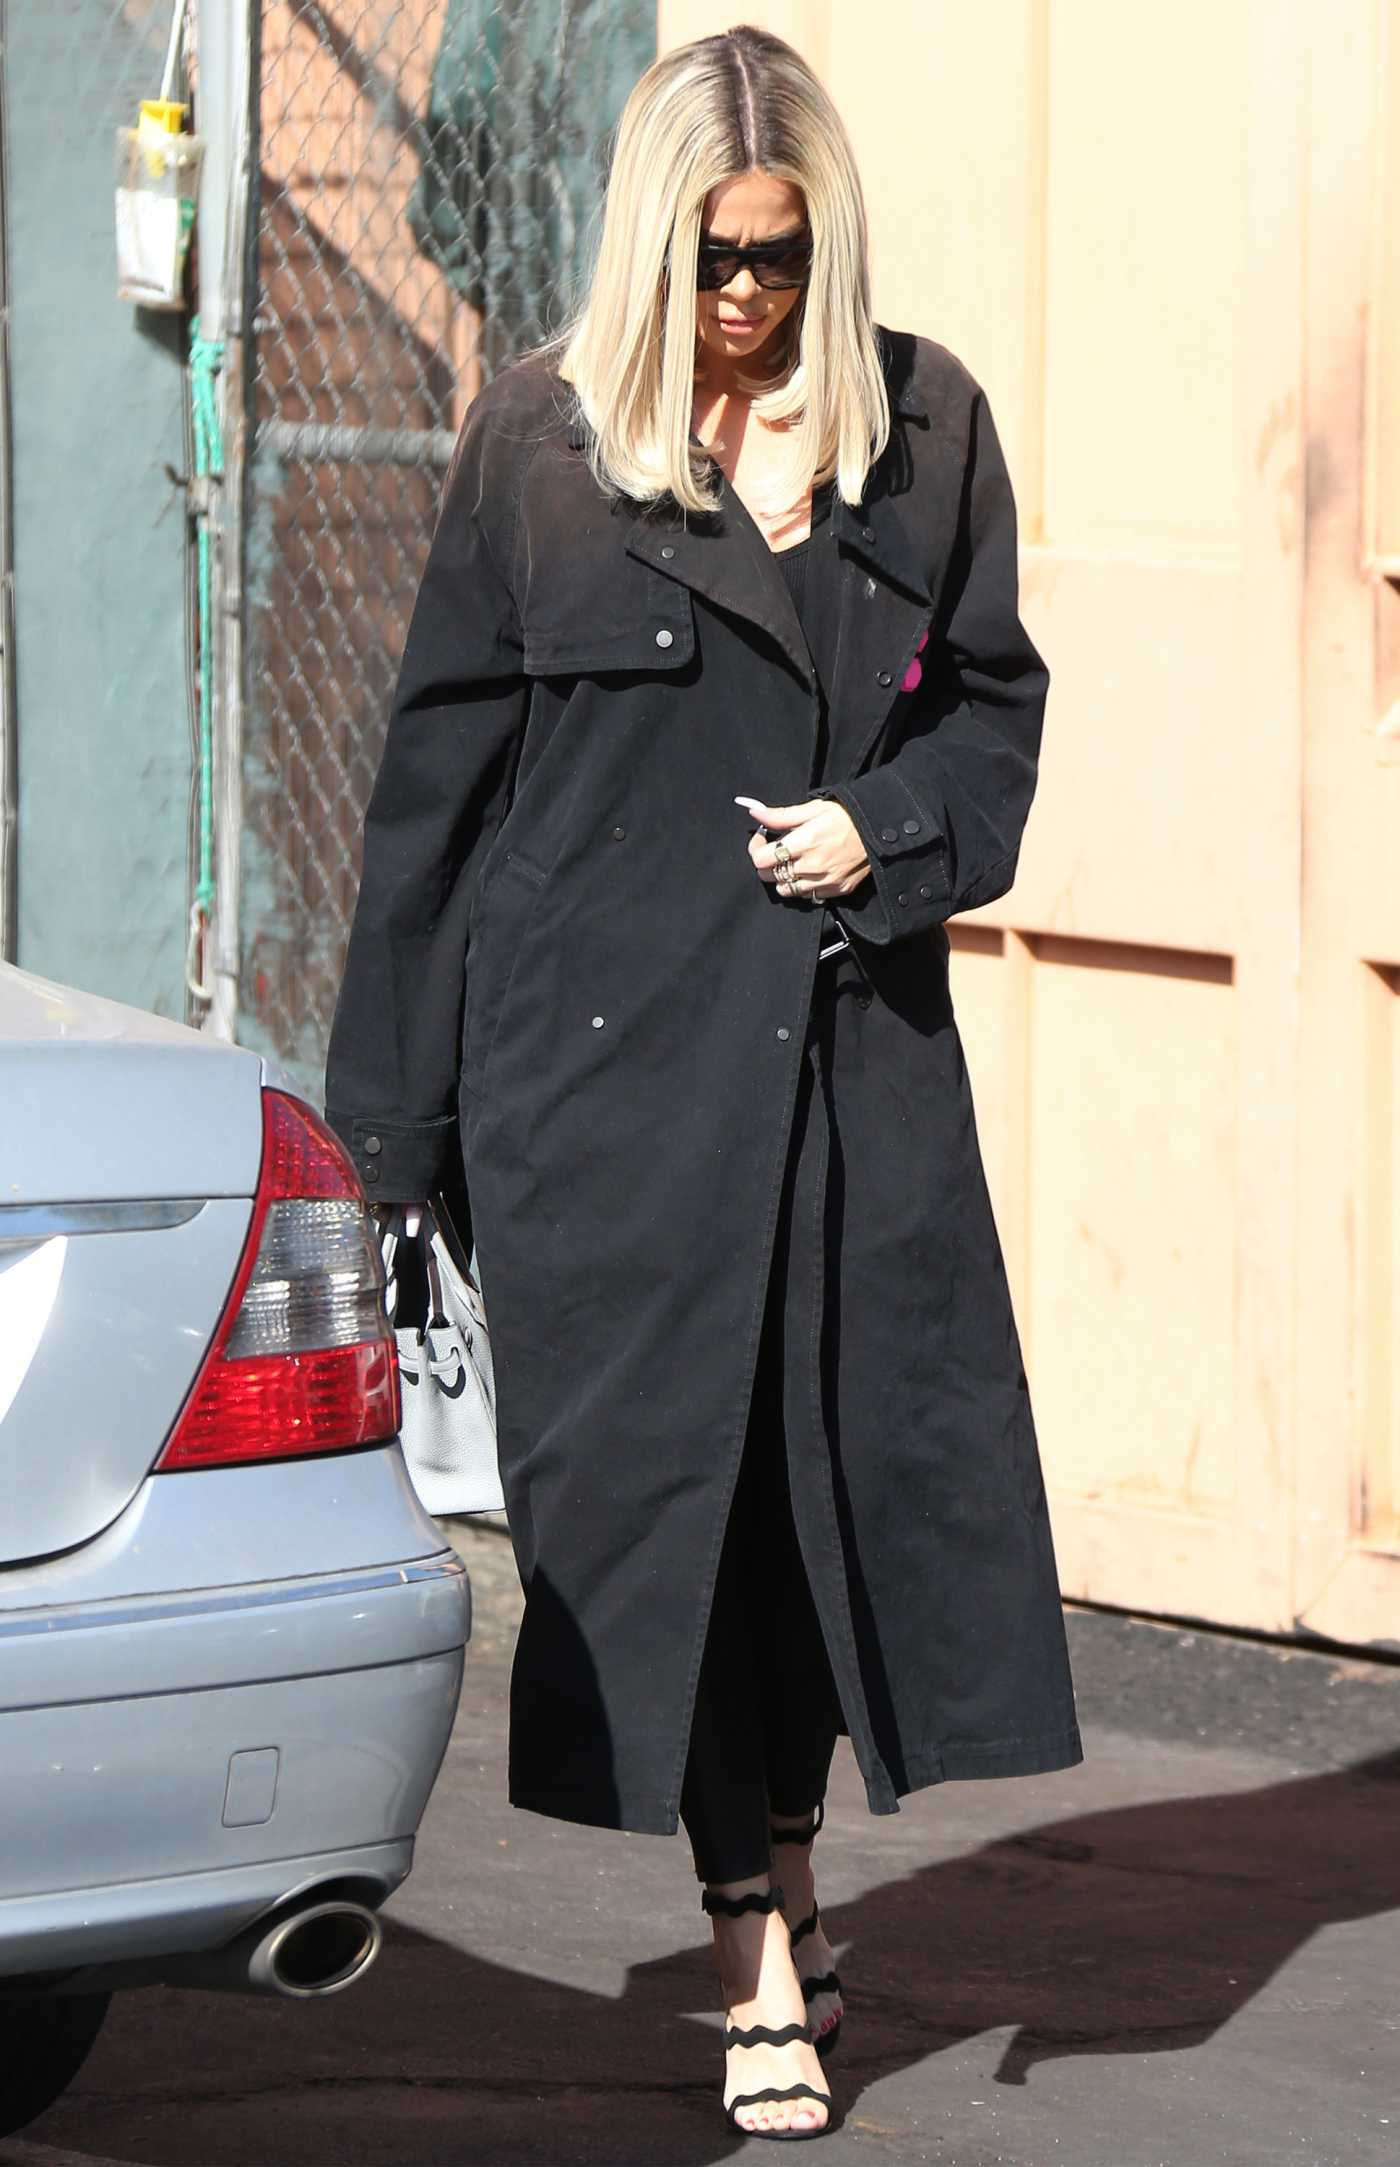 Khloe Kardashian in a Black Trench Coat Leaves Emilio's Trattoria Italian Restaurant in Encino 10/04/2019